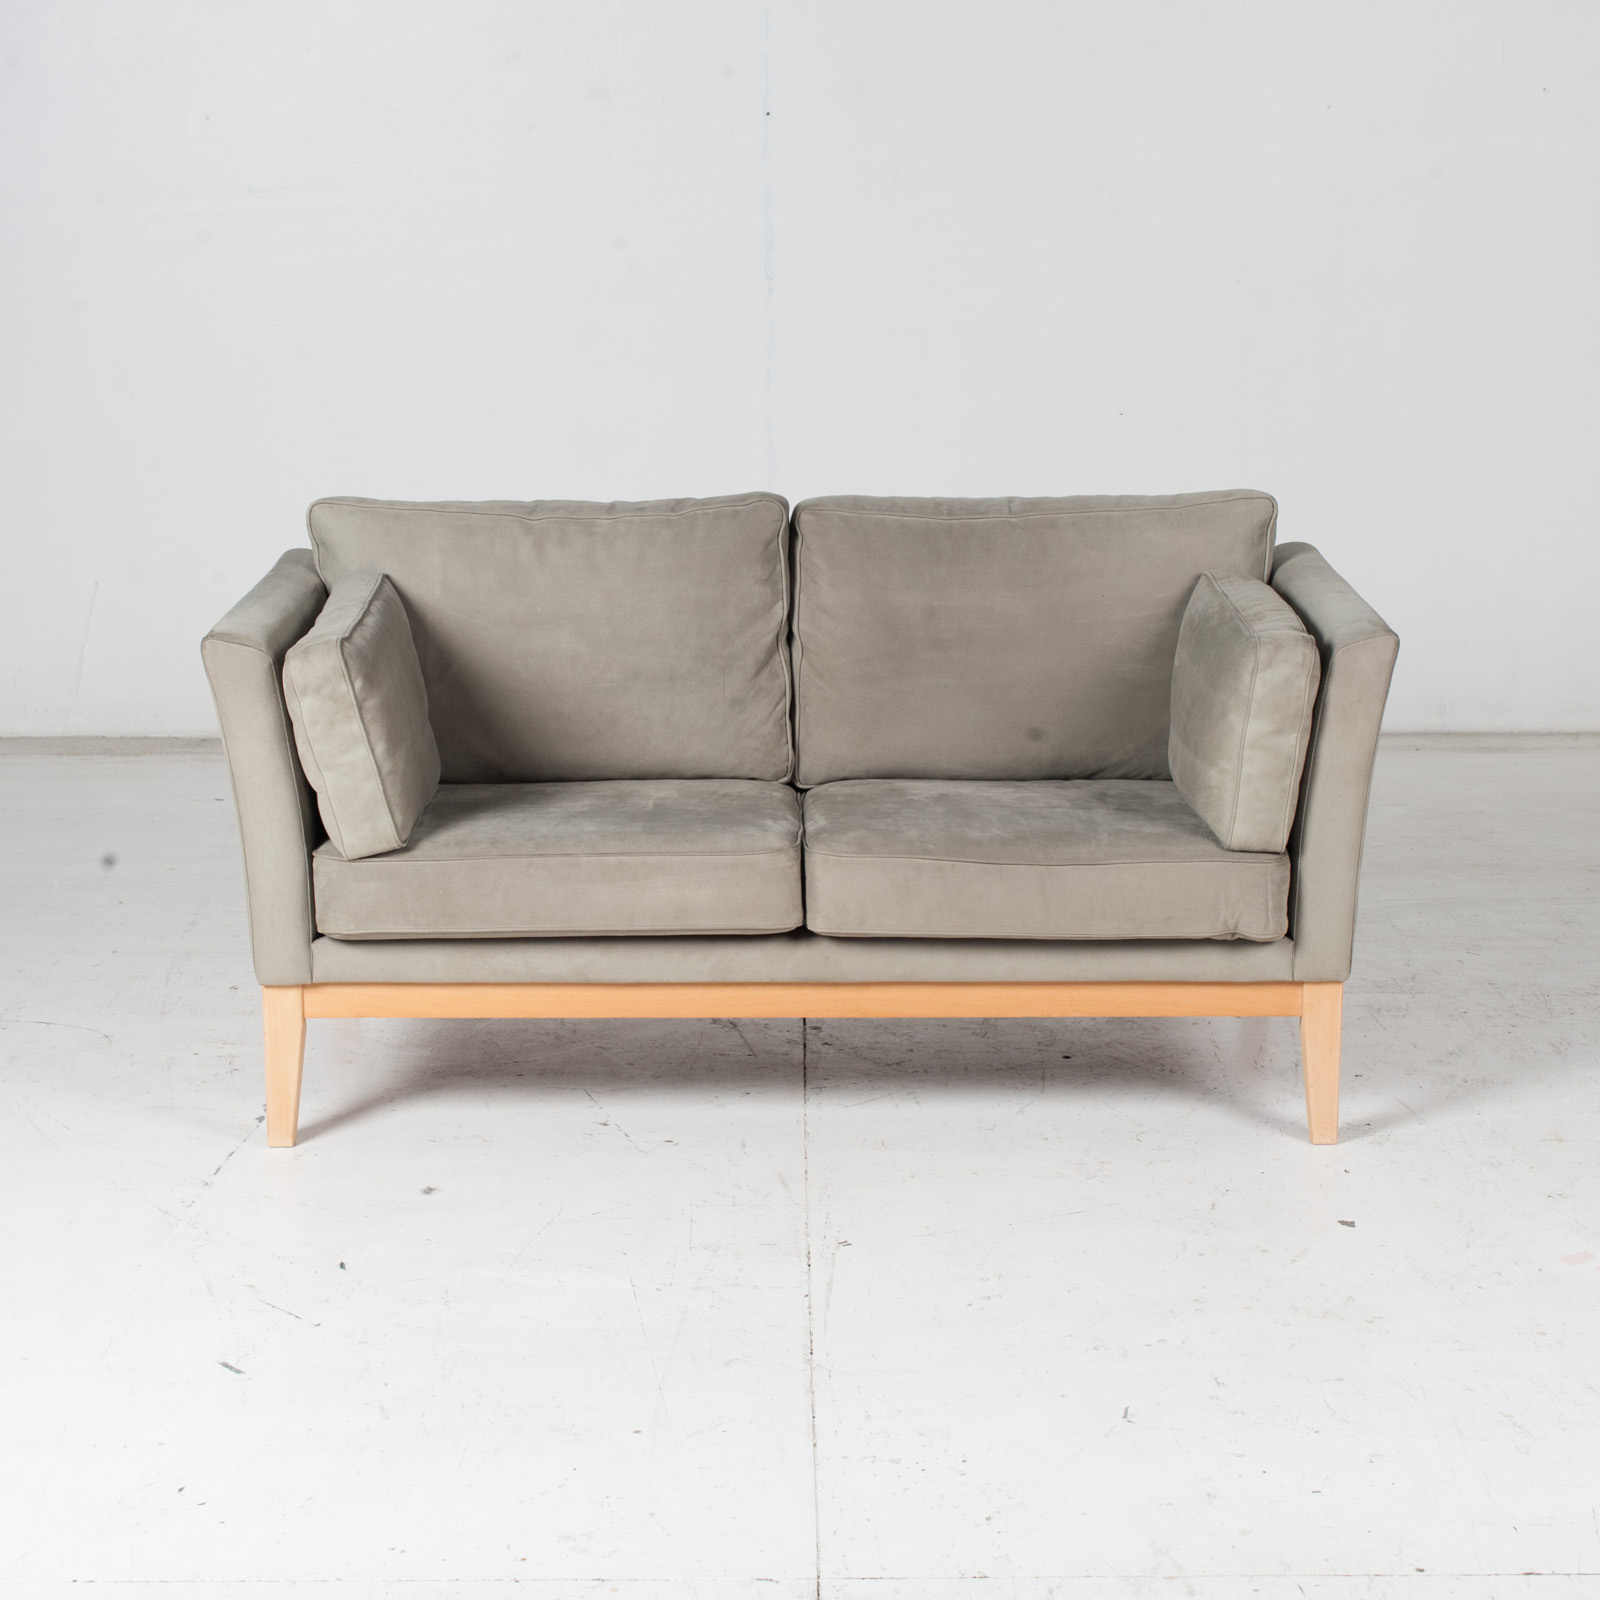 2 Seat Sofa By Stouby In Grey Macro Suede, 1960s, Denmark2